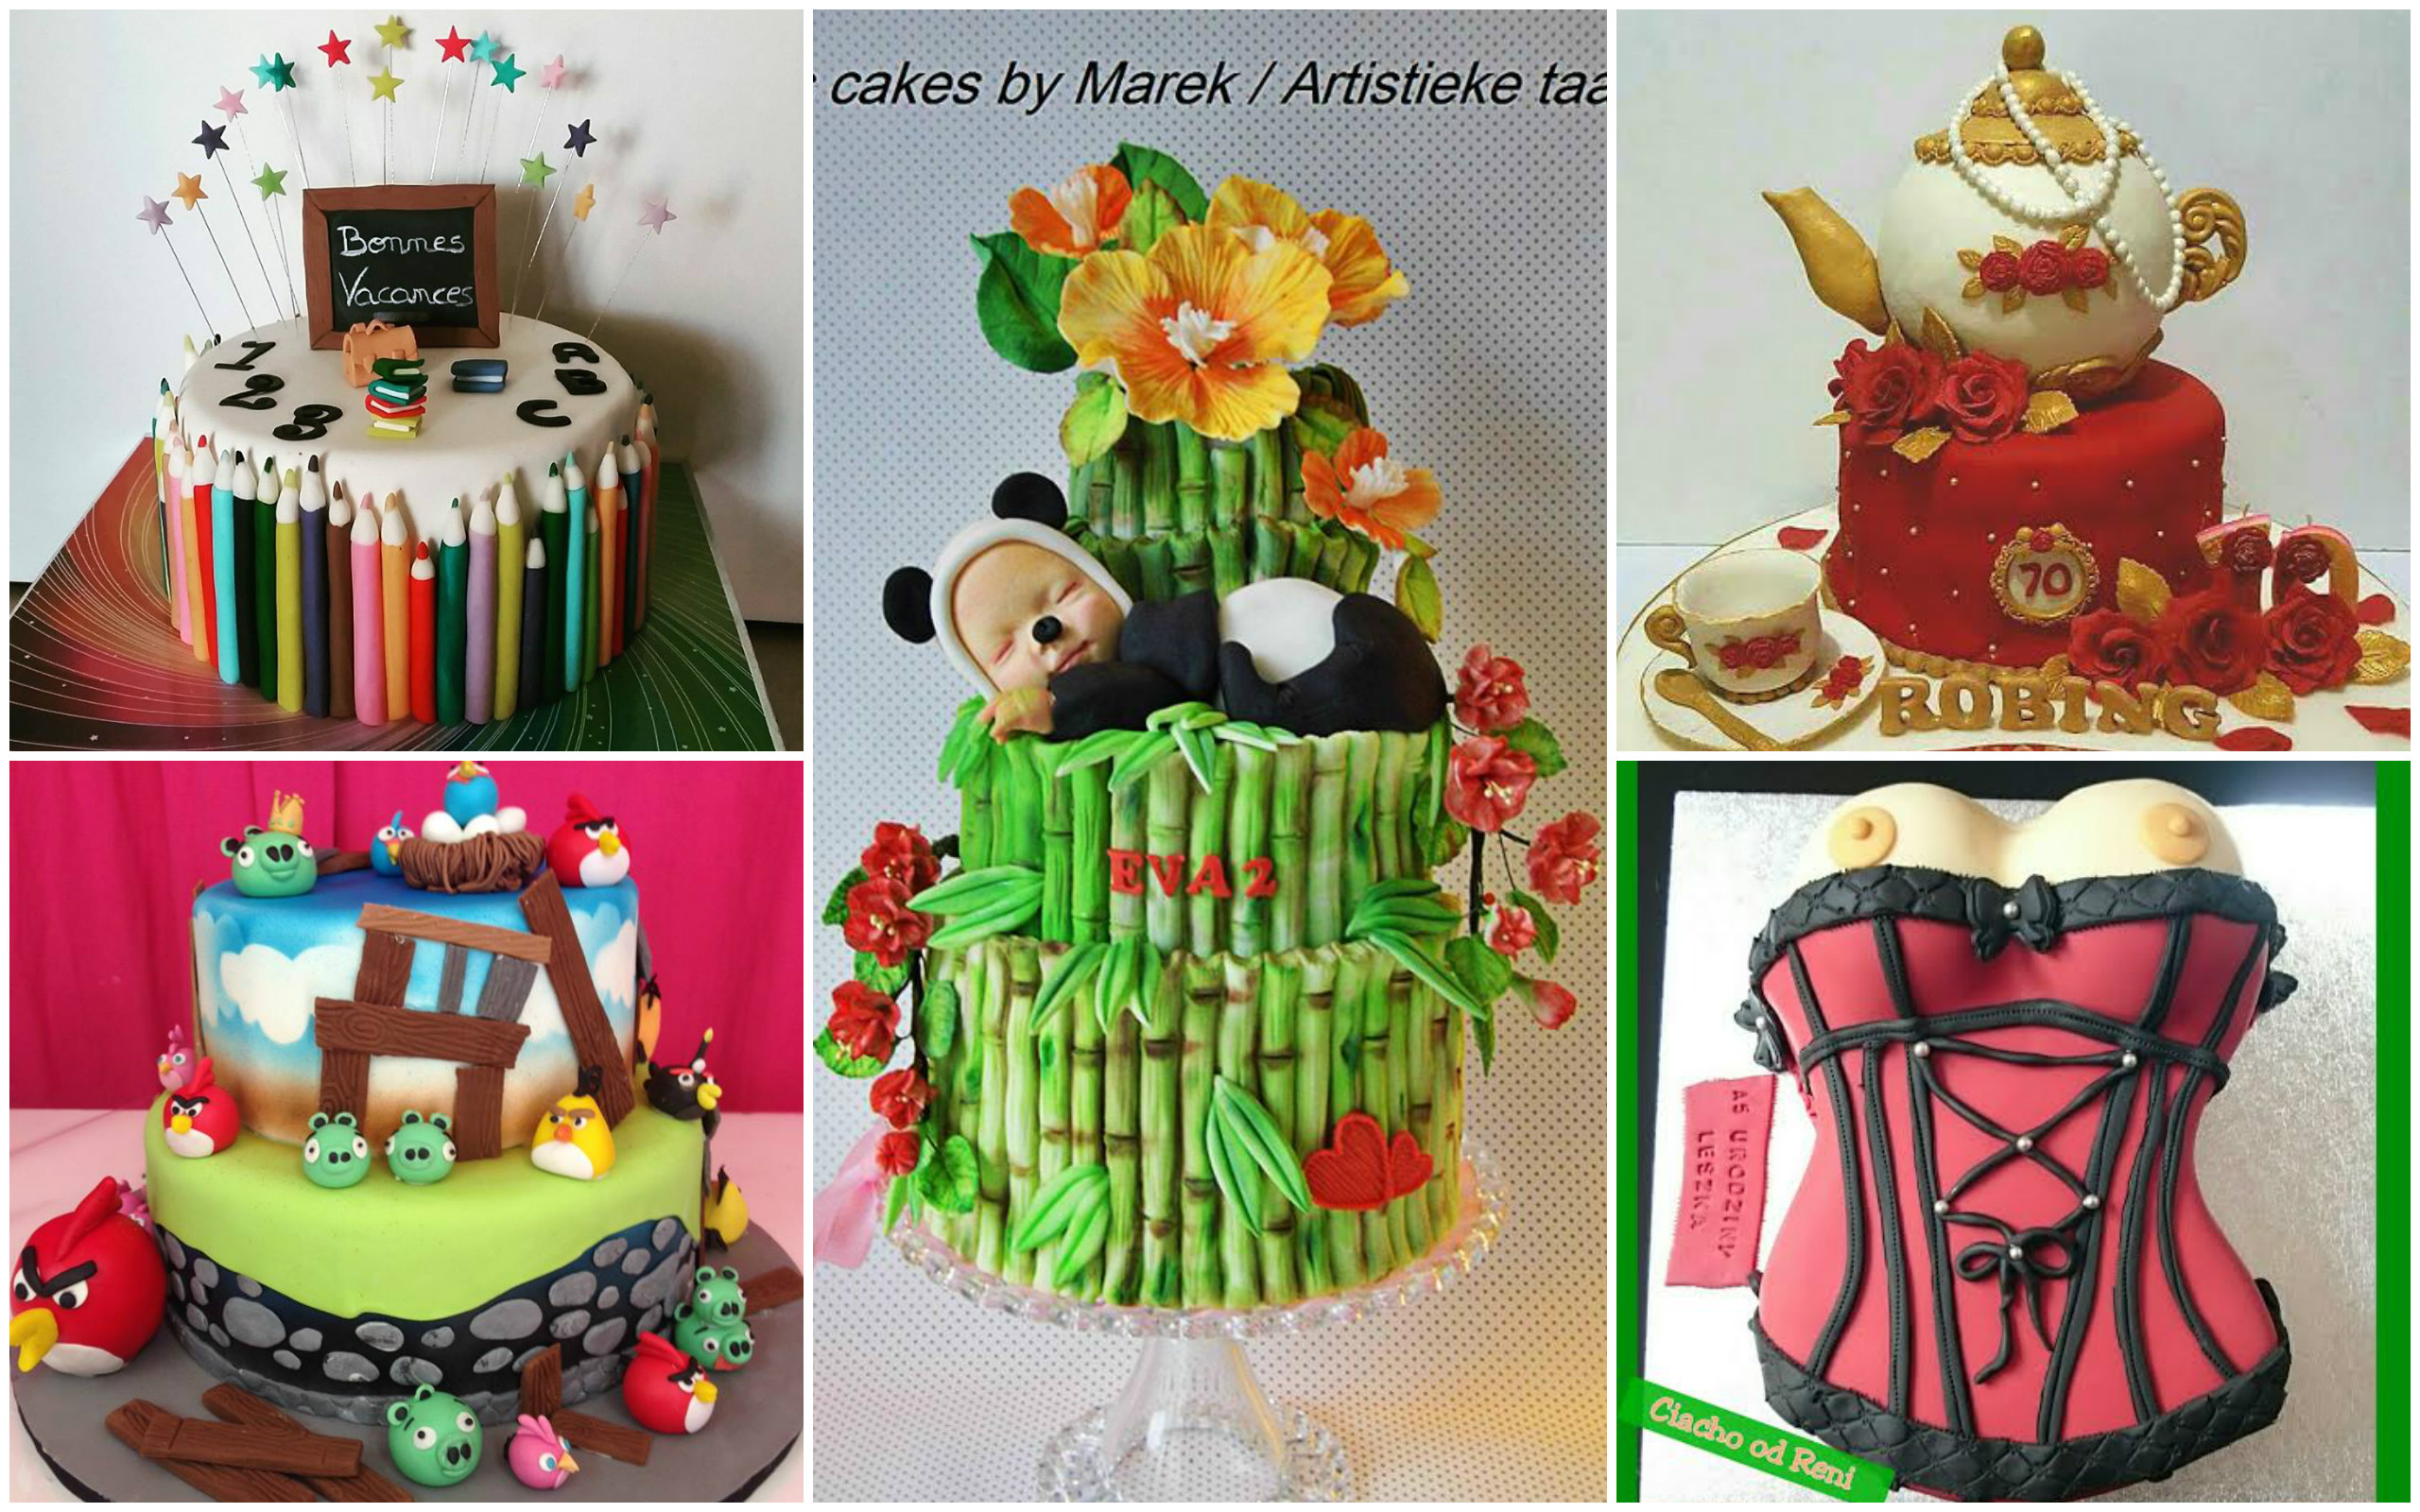 Cake Design Competition : Competition For Searching The World s Finest Cake